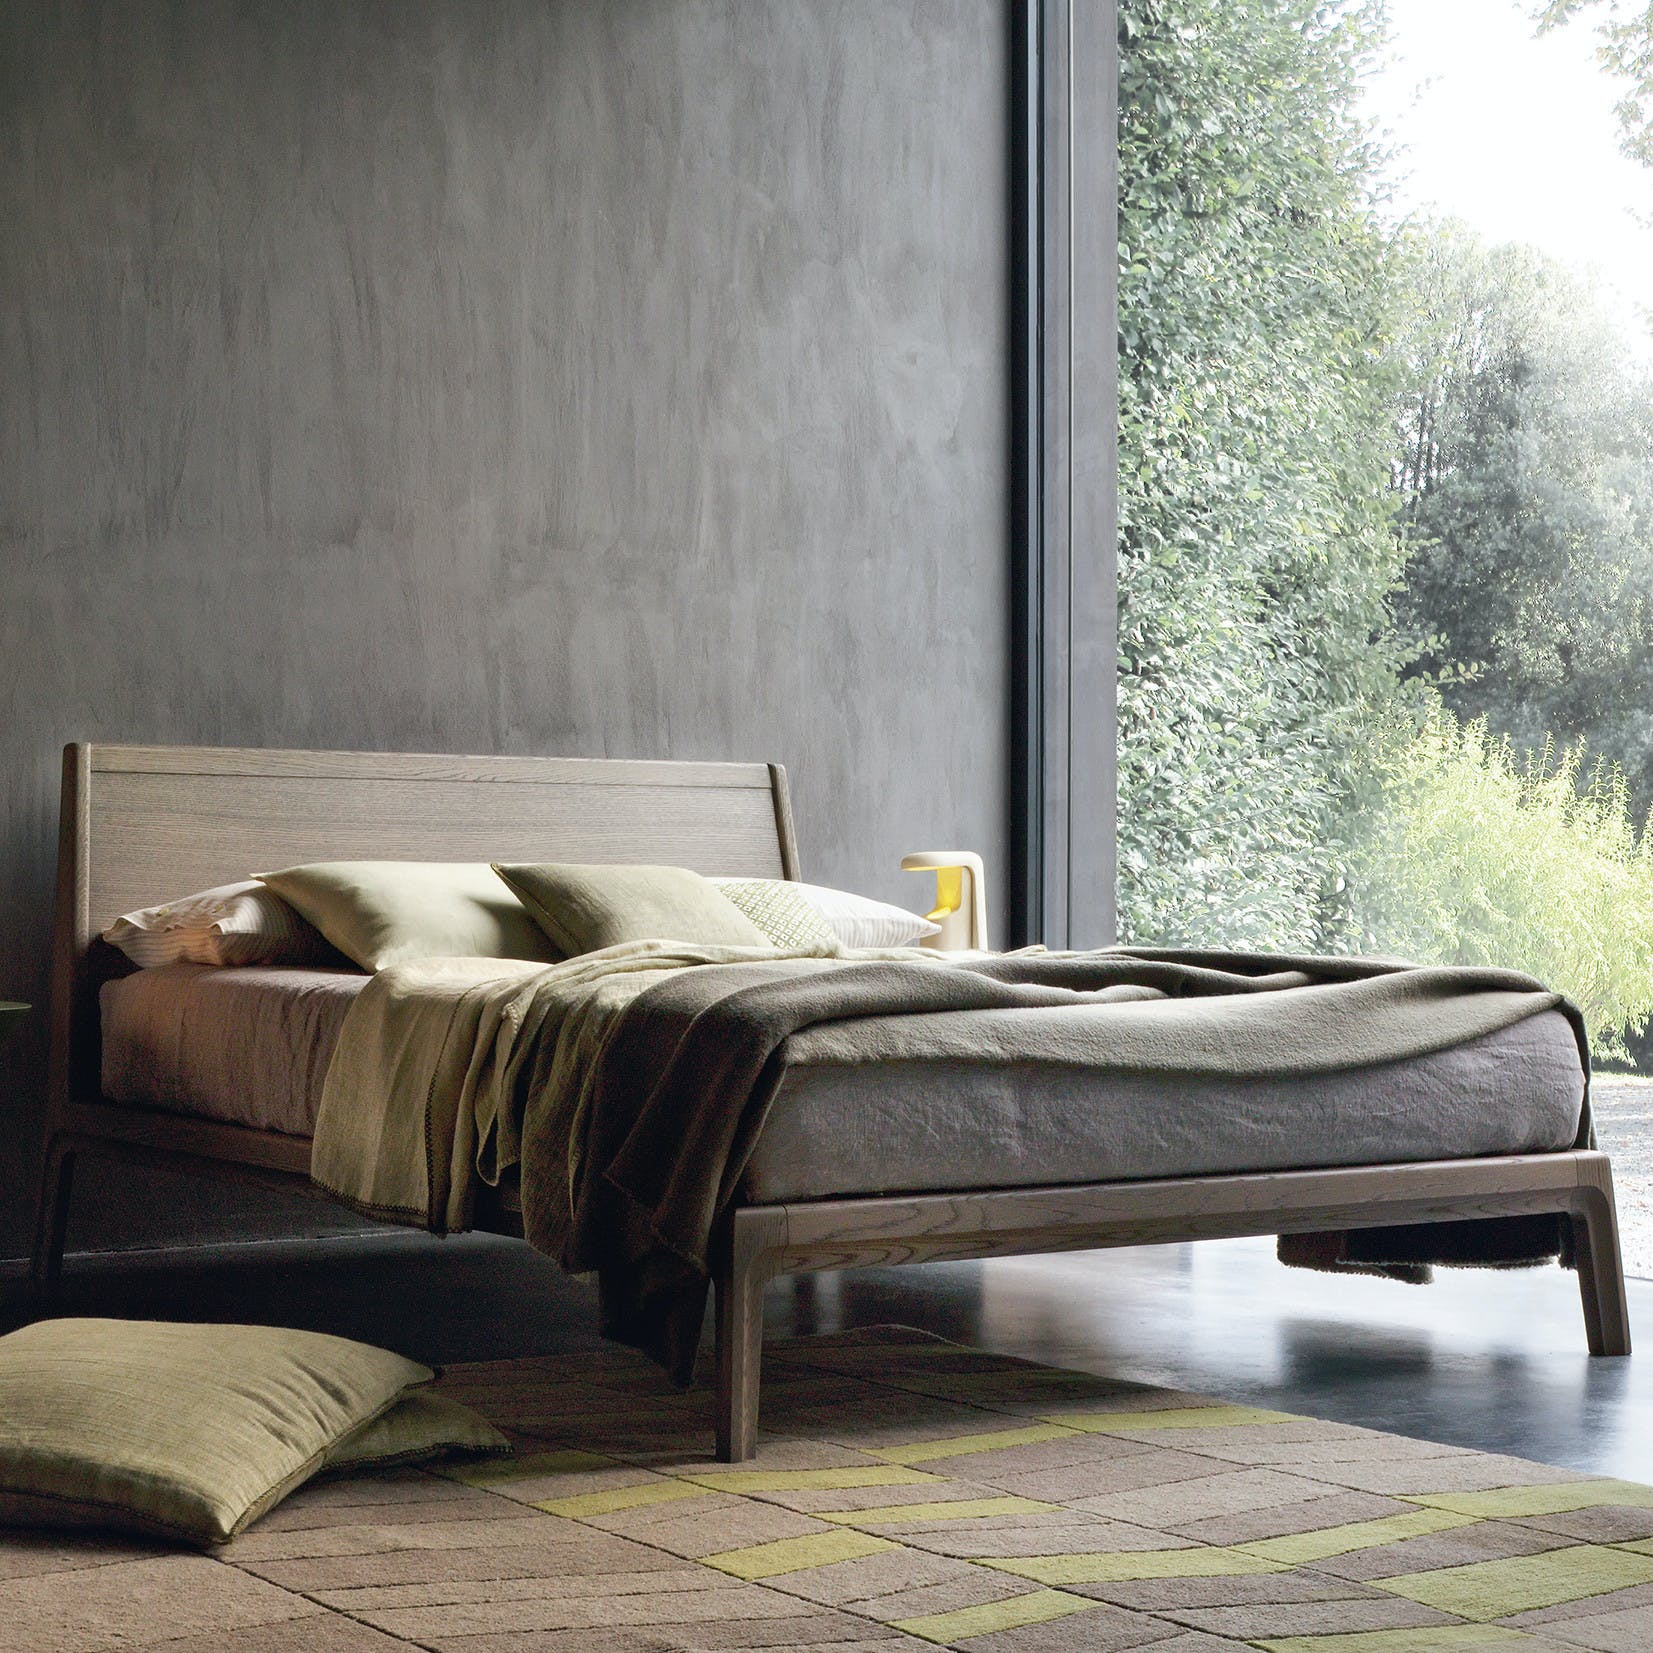 Giellesse Impronta Bed Full Angle Wood Haute Living